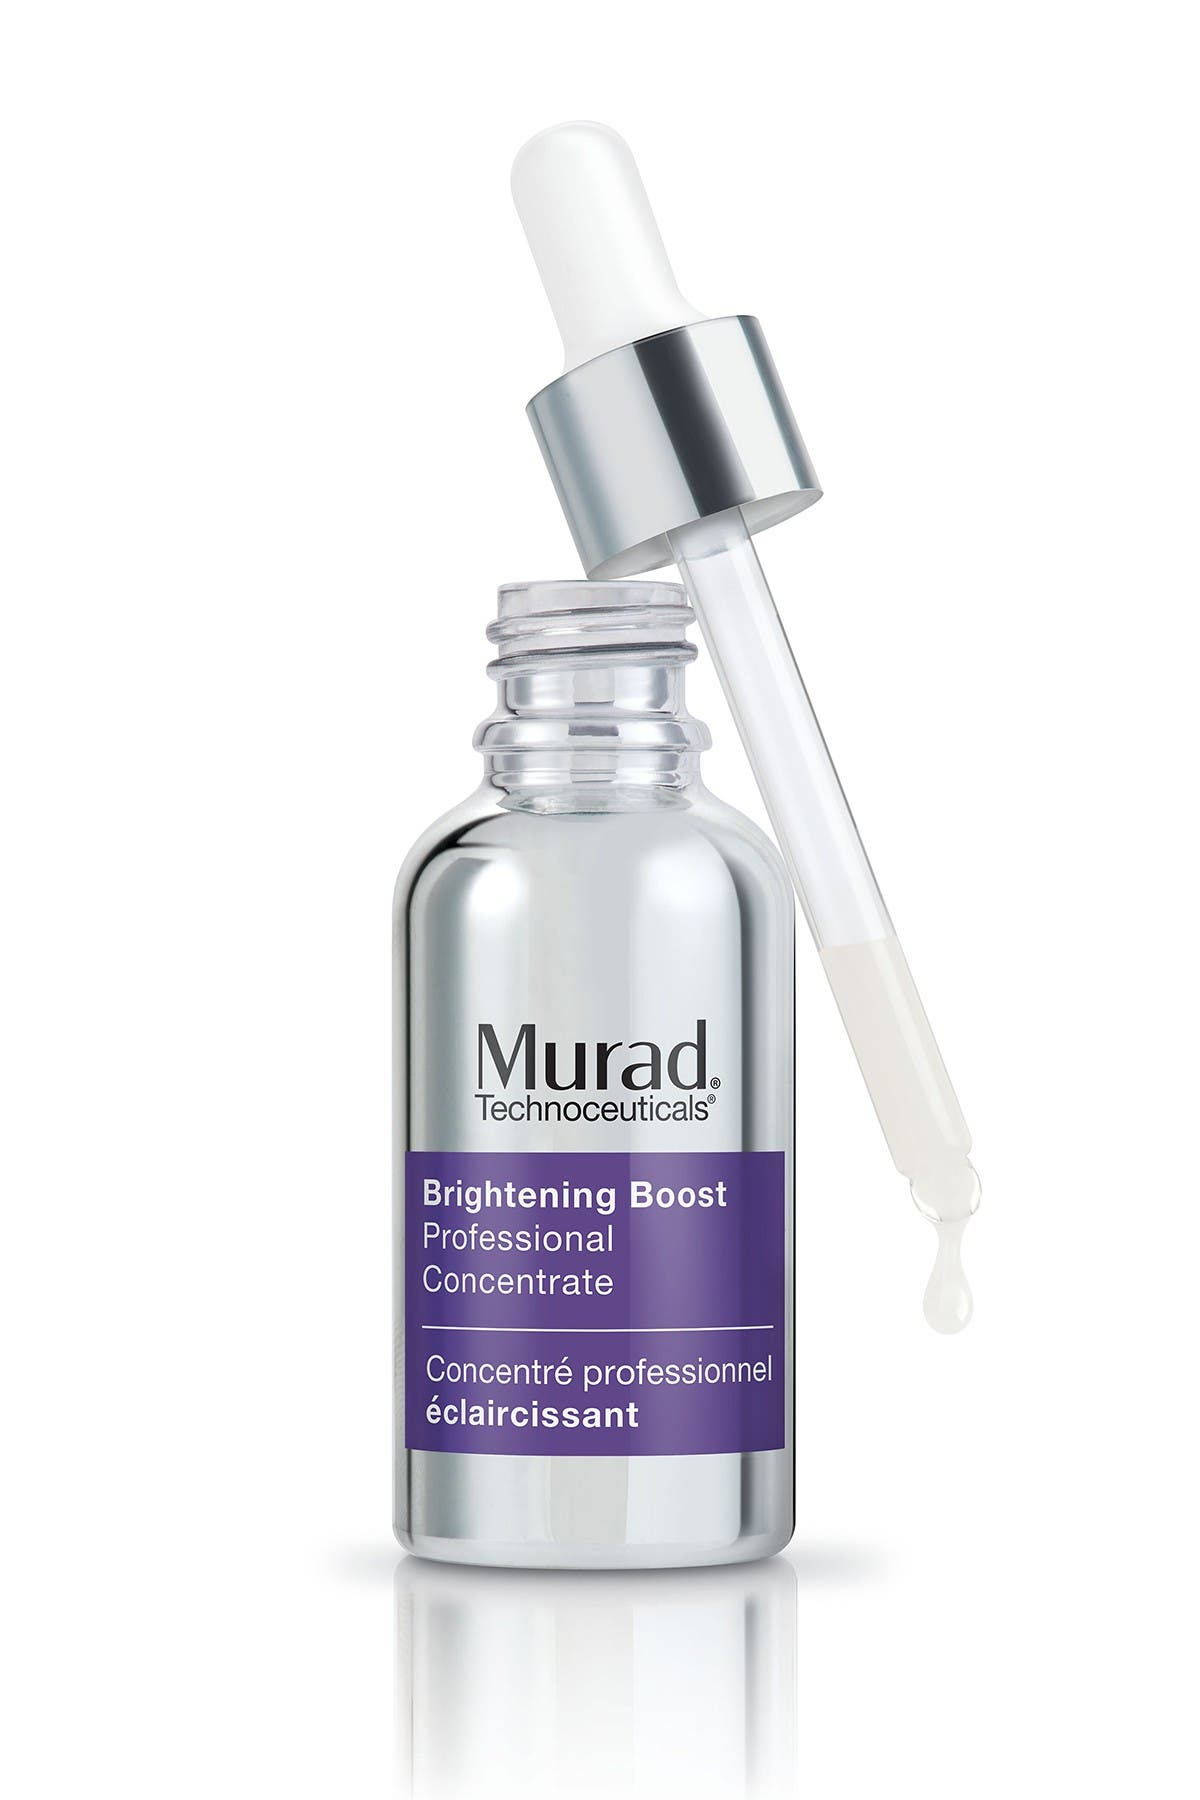 Image of Murad Technoceuticals Brightening Boost Professional Concentrate